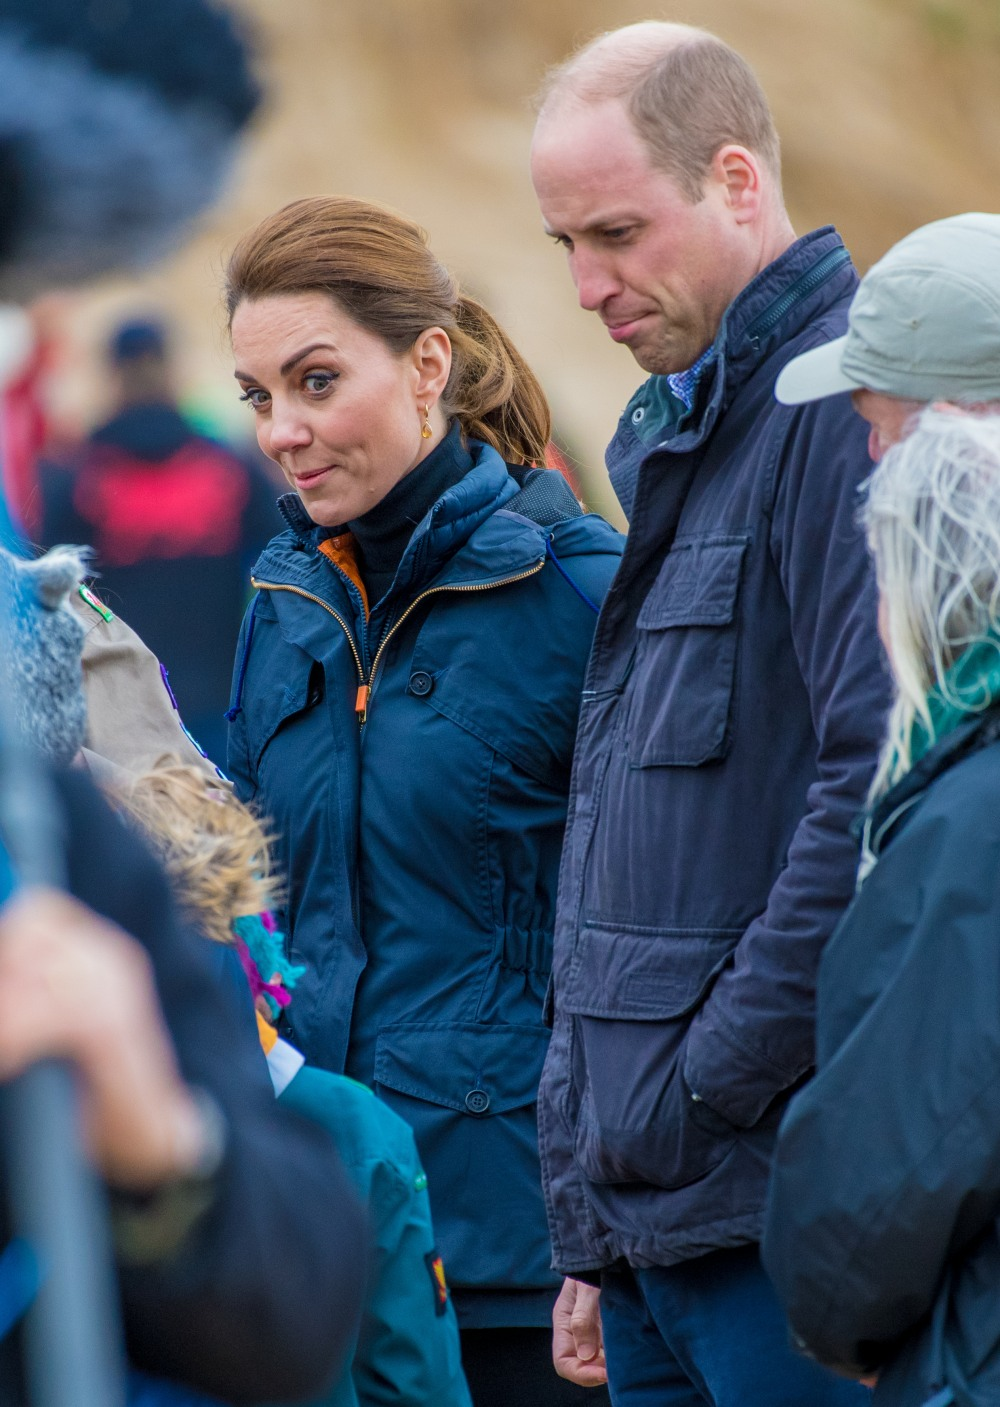 Prince William says the Cambridges spent their week off at a Welsh dairy farm